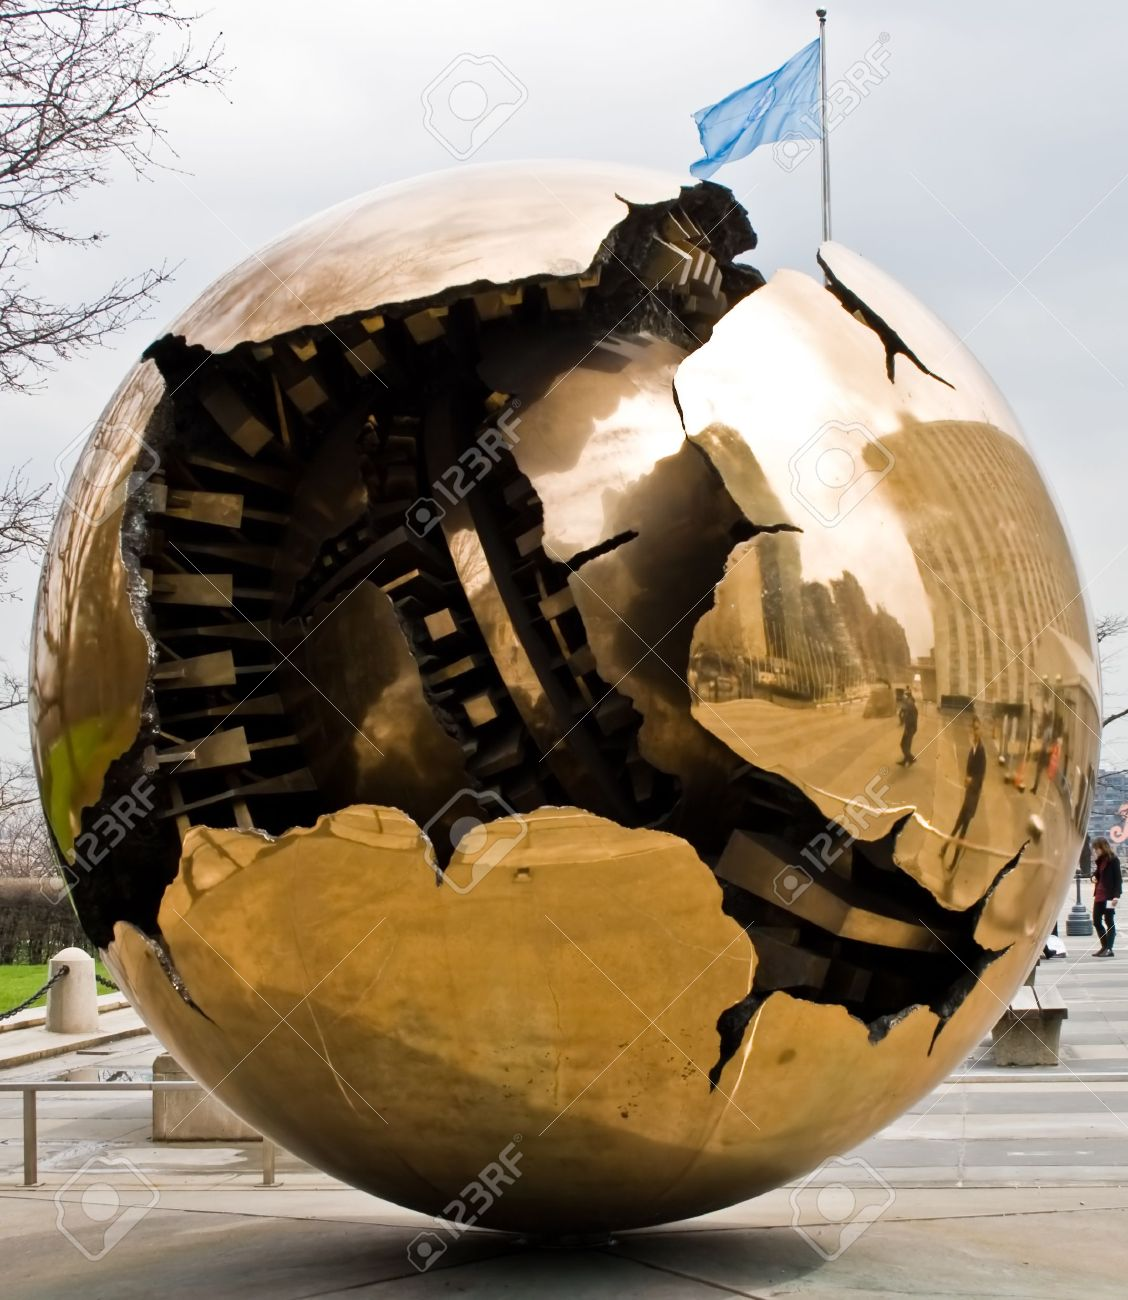 Image result for golden globe statue at united nations picture